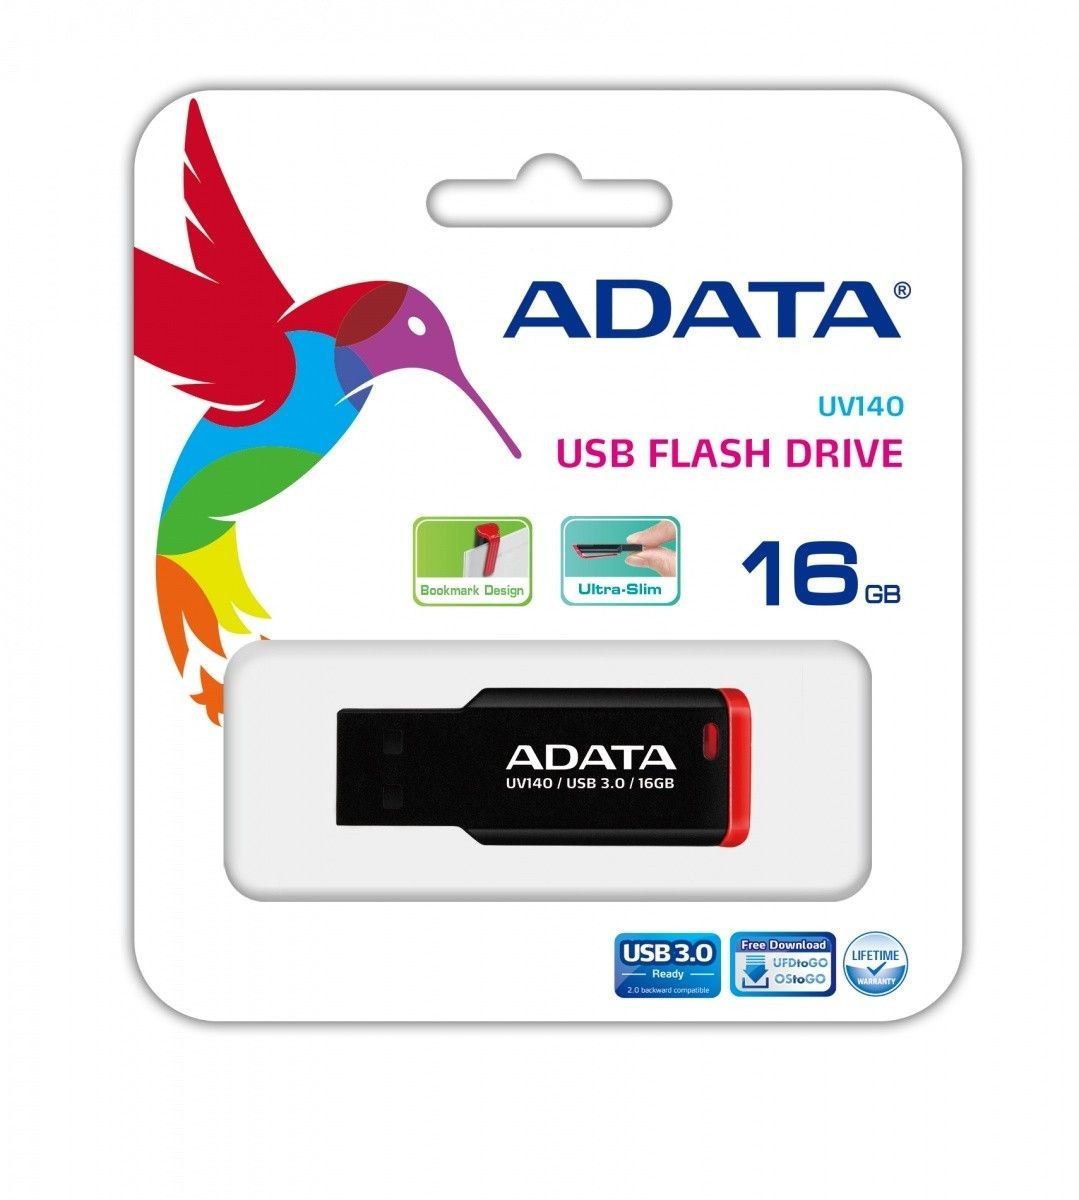 A-Data Adata Flash Drive UV140, 16GB, USB 2.0, black and red